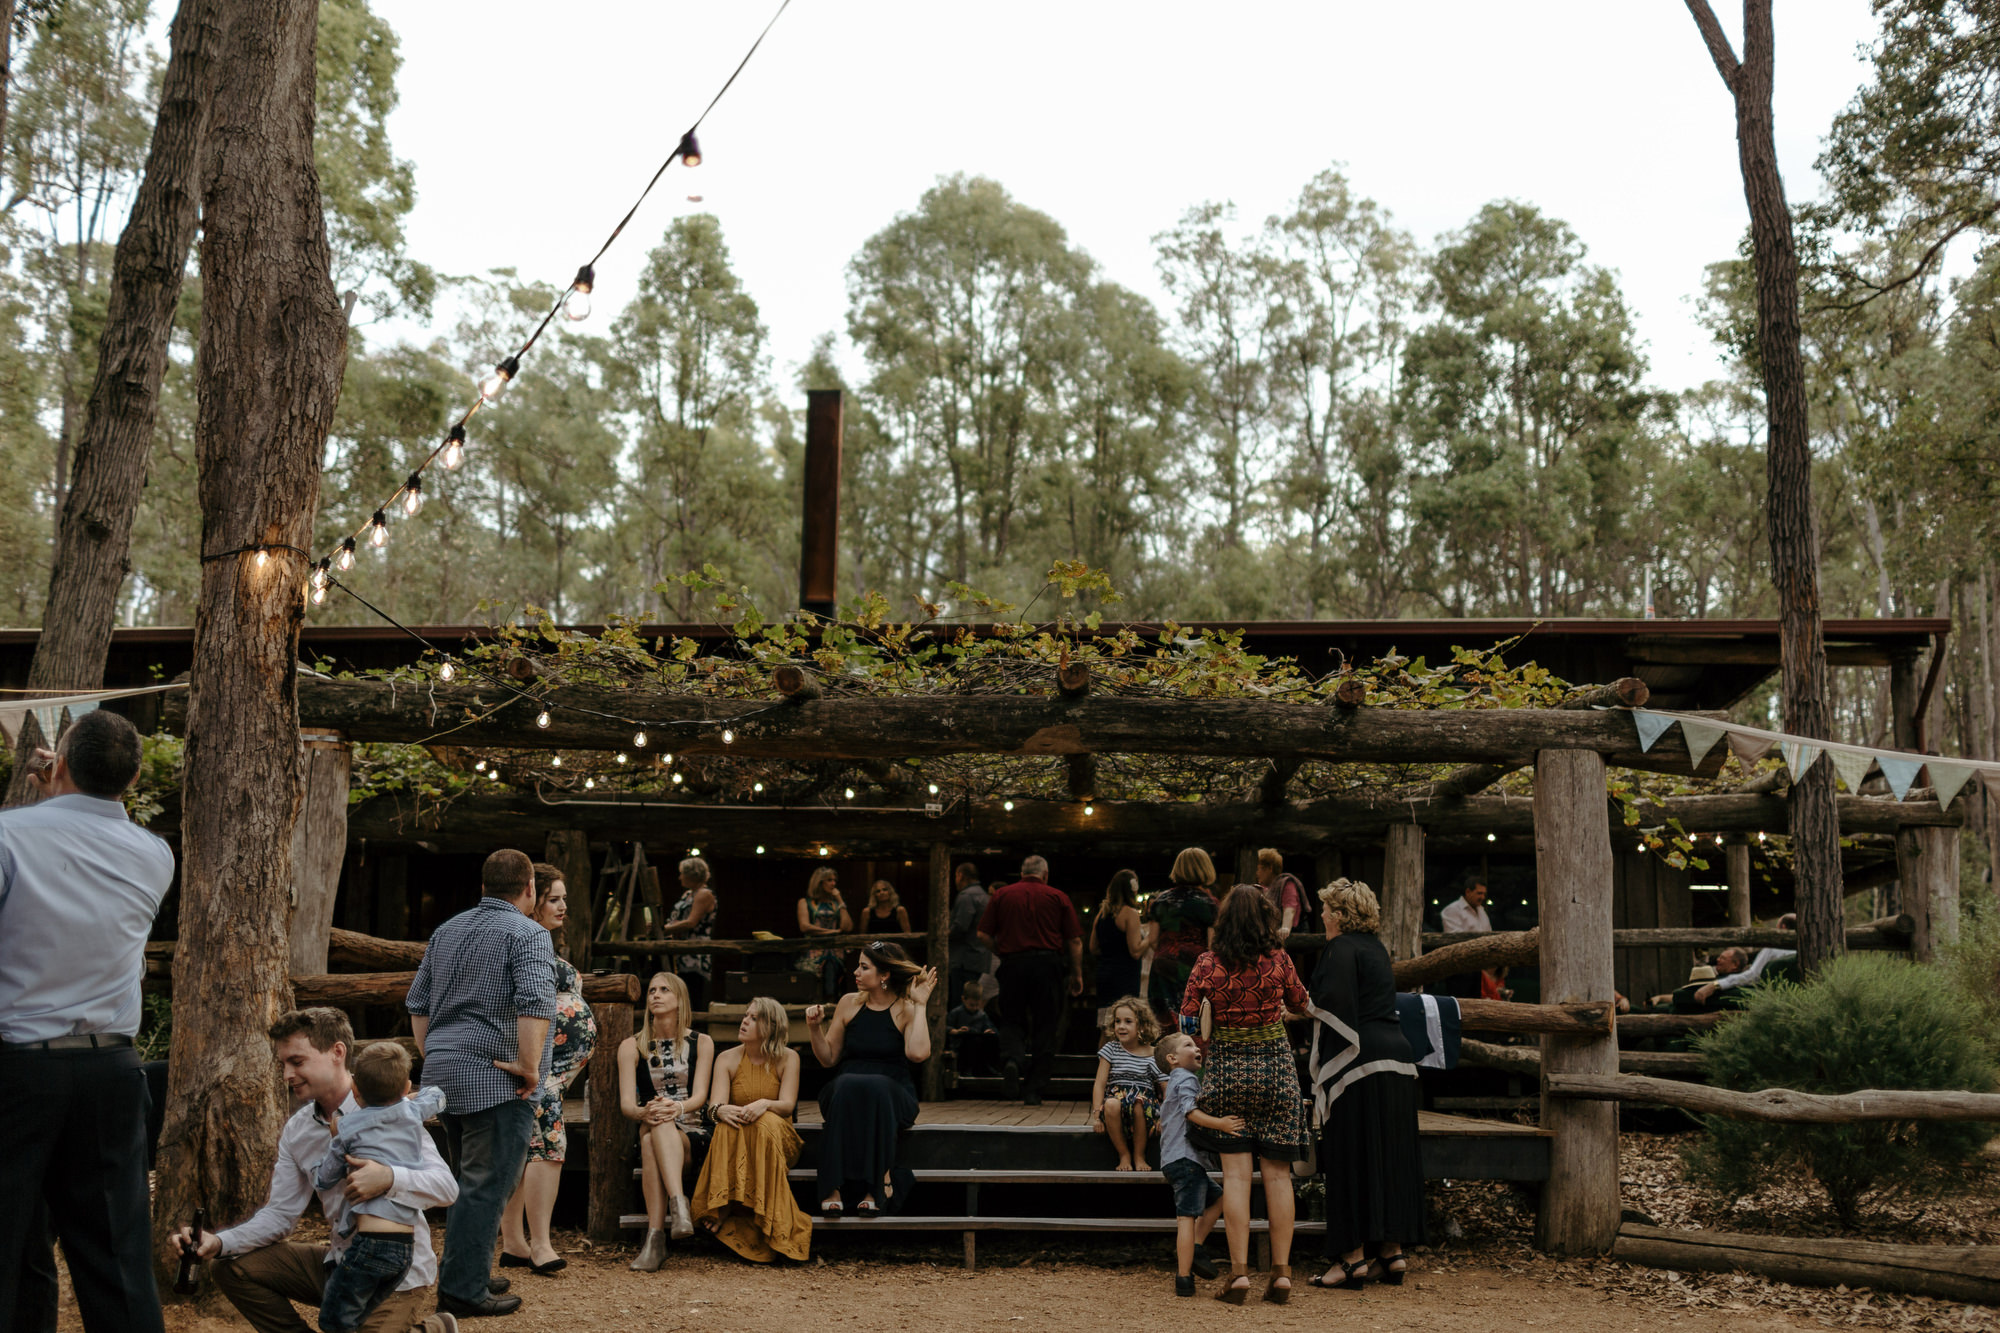 CARTER-ROSE-PHOTOGRAPHY-NICHOLAS-WEDDING-NANGA-BUSH-CAMP586.JPG